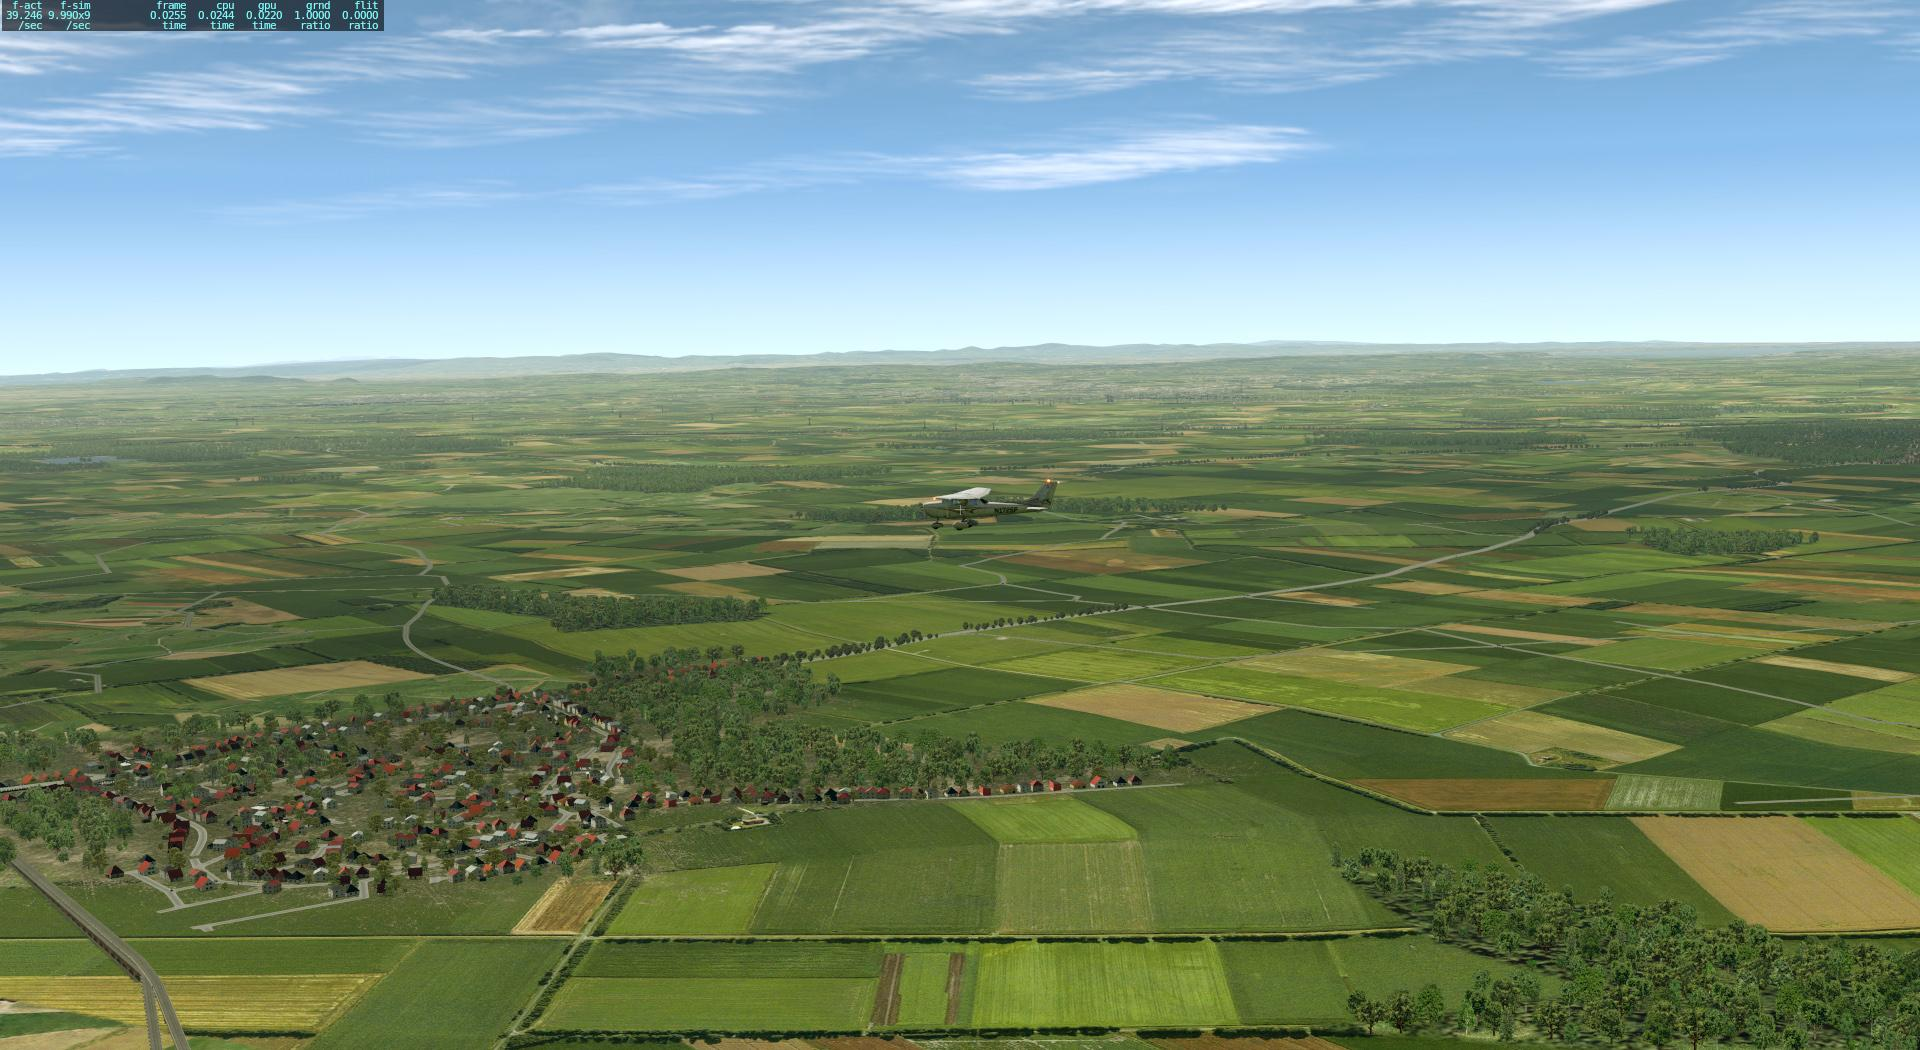 Orbx 2019: FTX Global comes to X-Plane, LOWI & KEGE